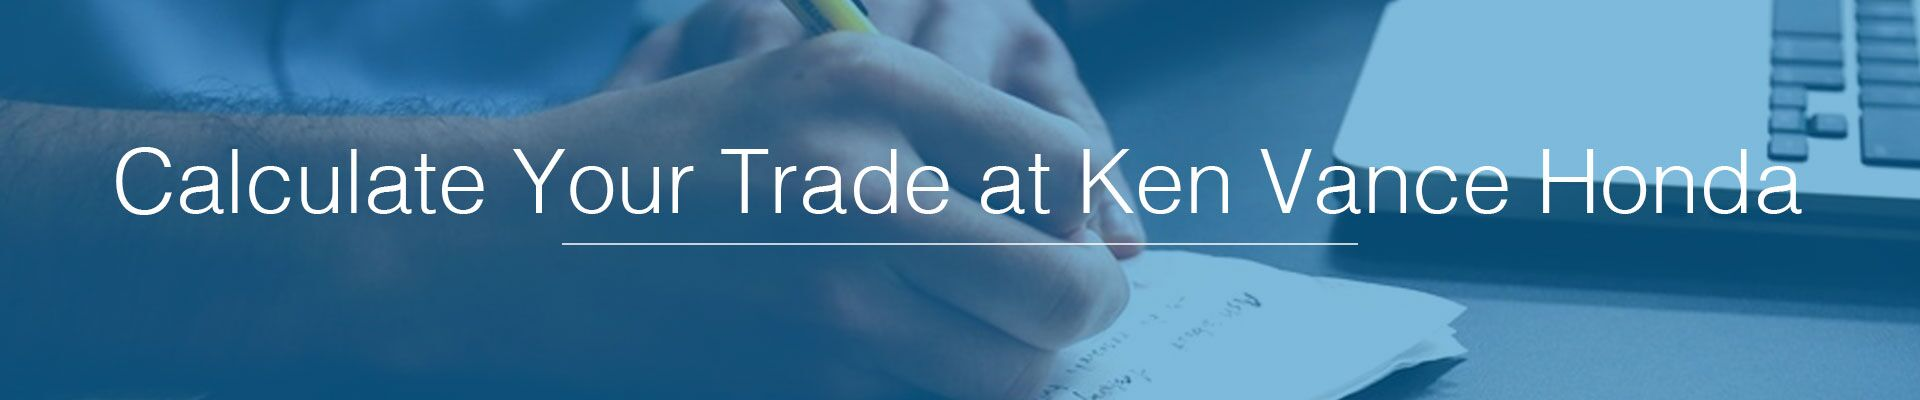 Calculate Your Trade at Ken Vance Honda